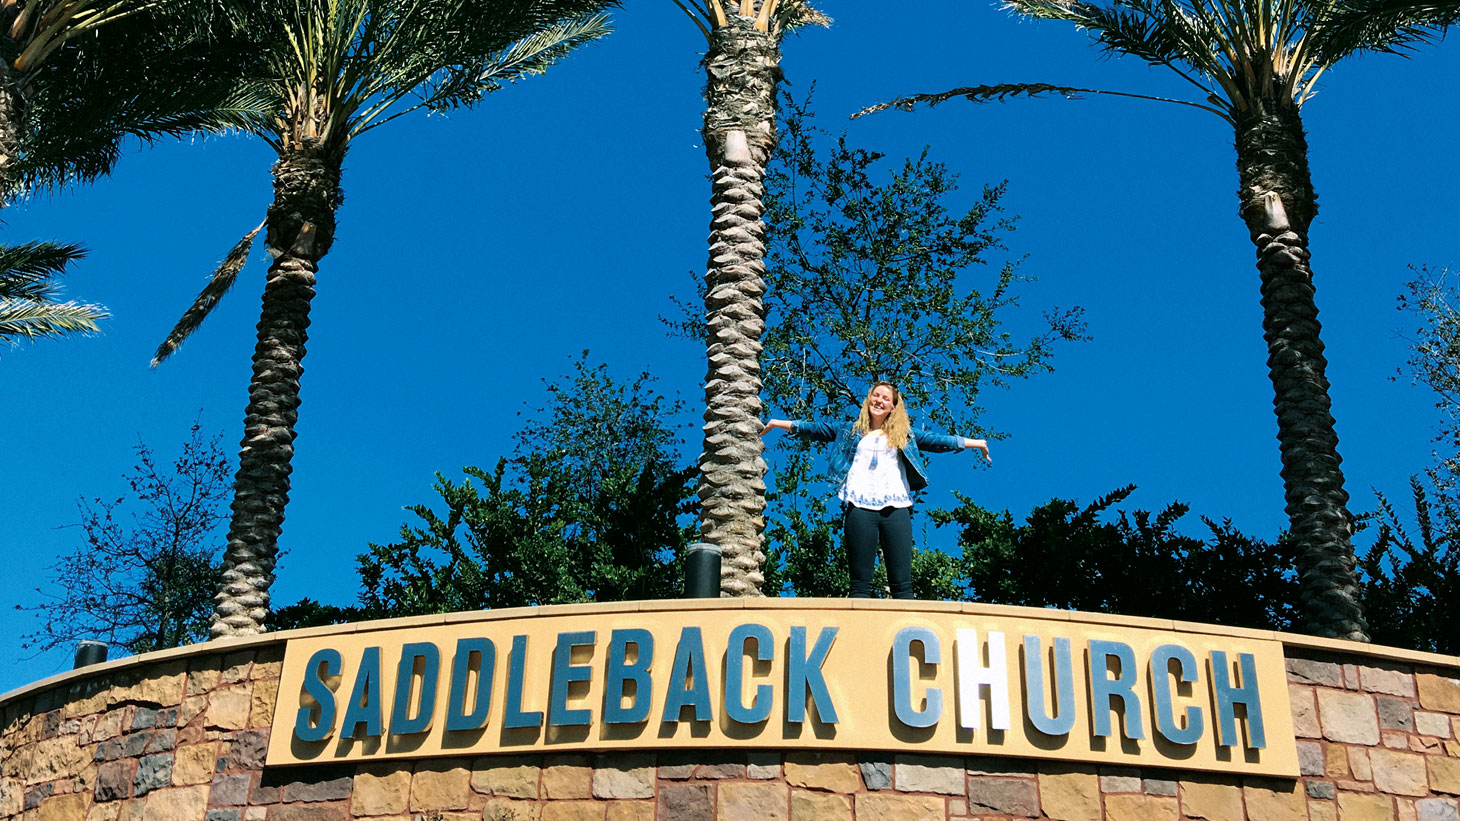 A student outside her placement: Saddleback Church in the US